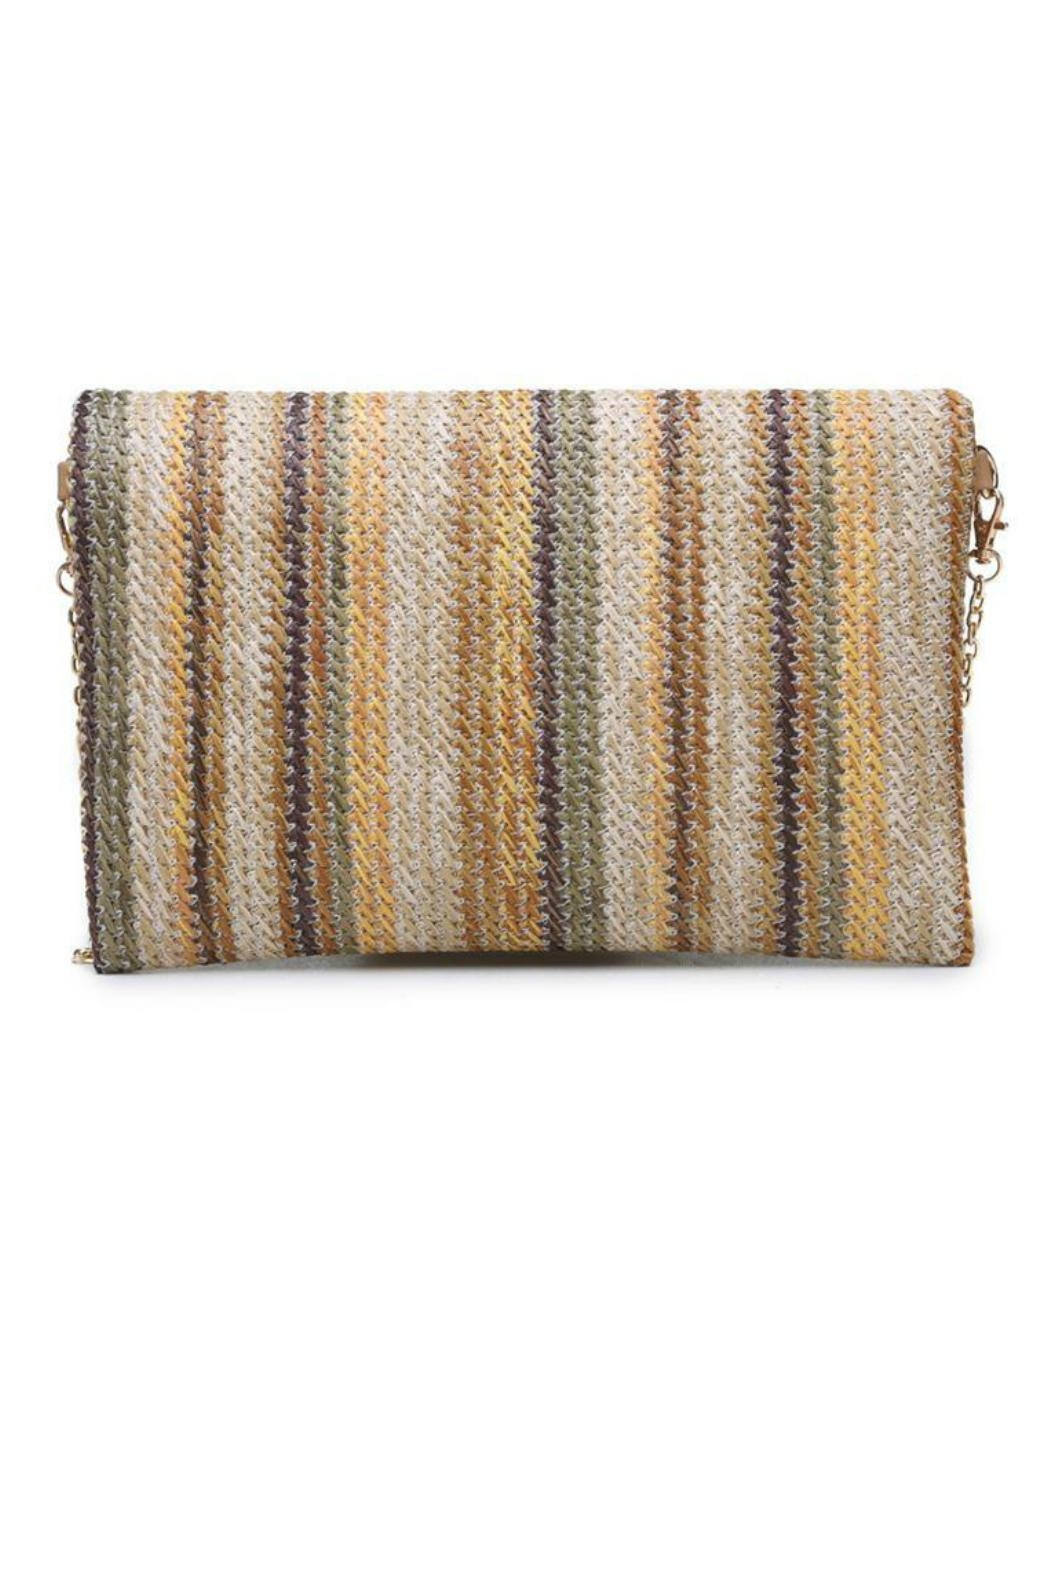 Urban Expressions Maui Clutch - Front Full Image